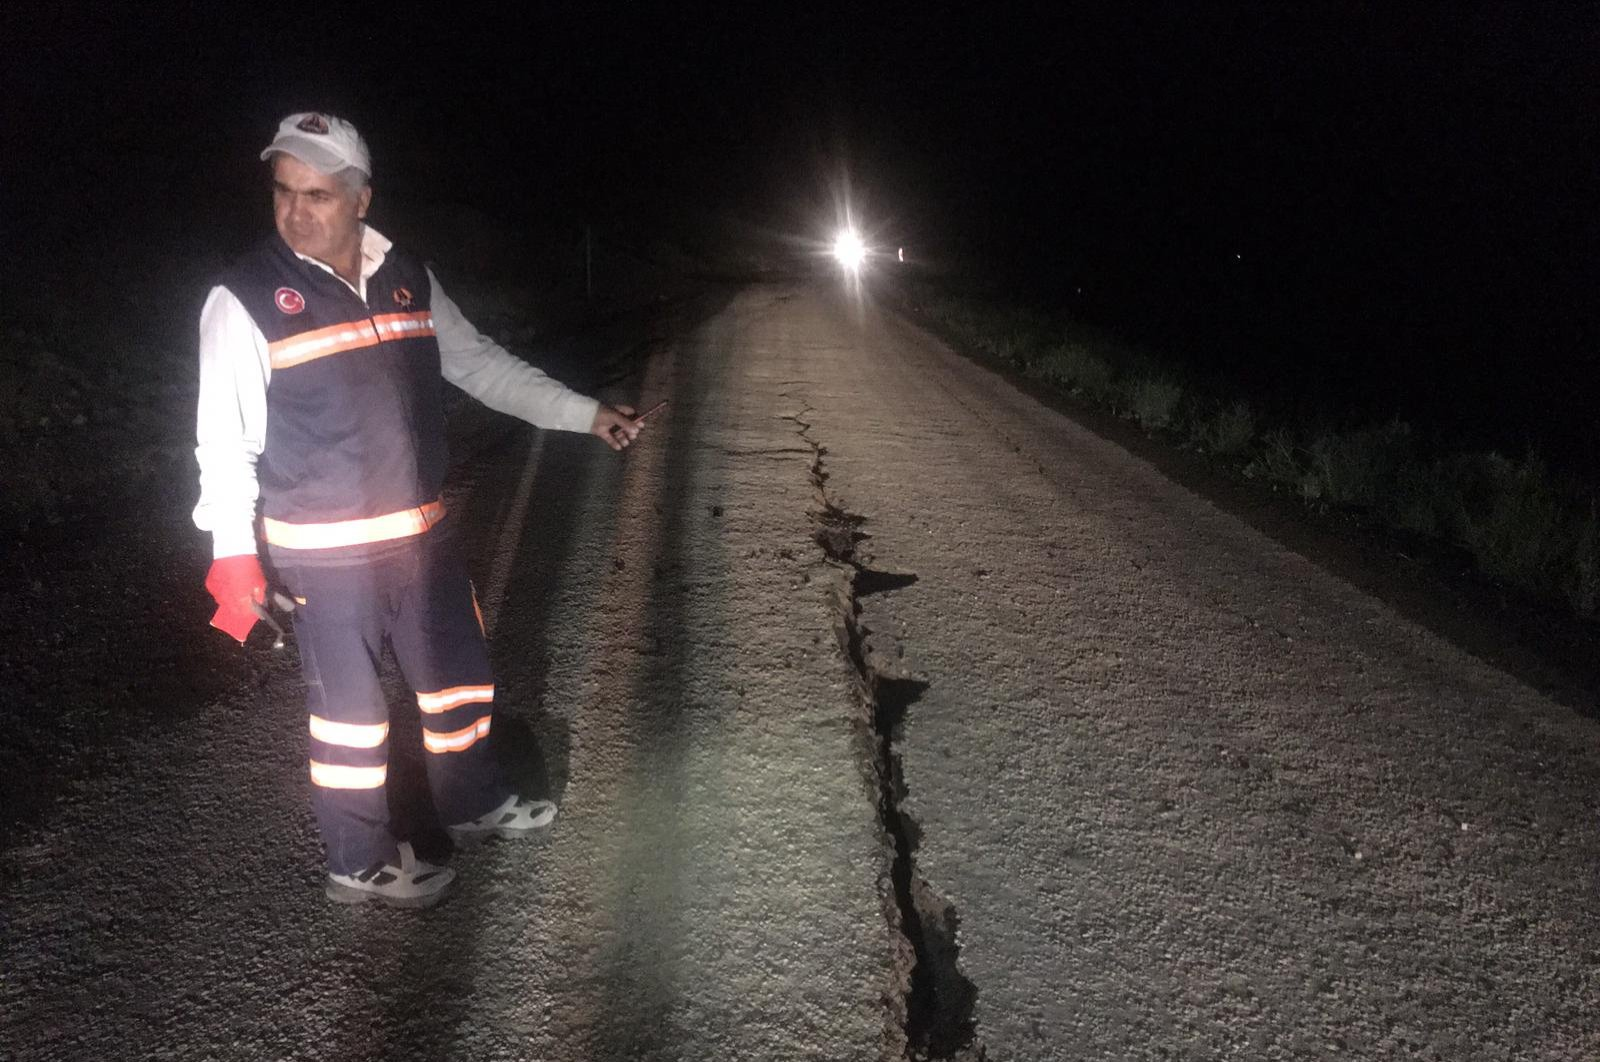 A Disaster and Emergency Management Authority (AFAD) employee stands by a crack that emerged in a road following a 5.7 magnitude earthquake, Bingöl, Turkey, June 14, 2020. (AA Photo)